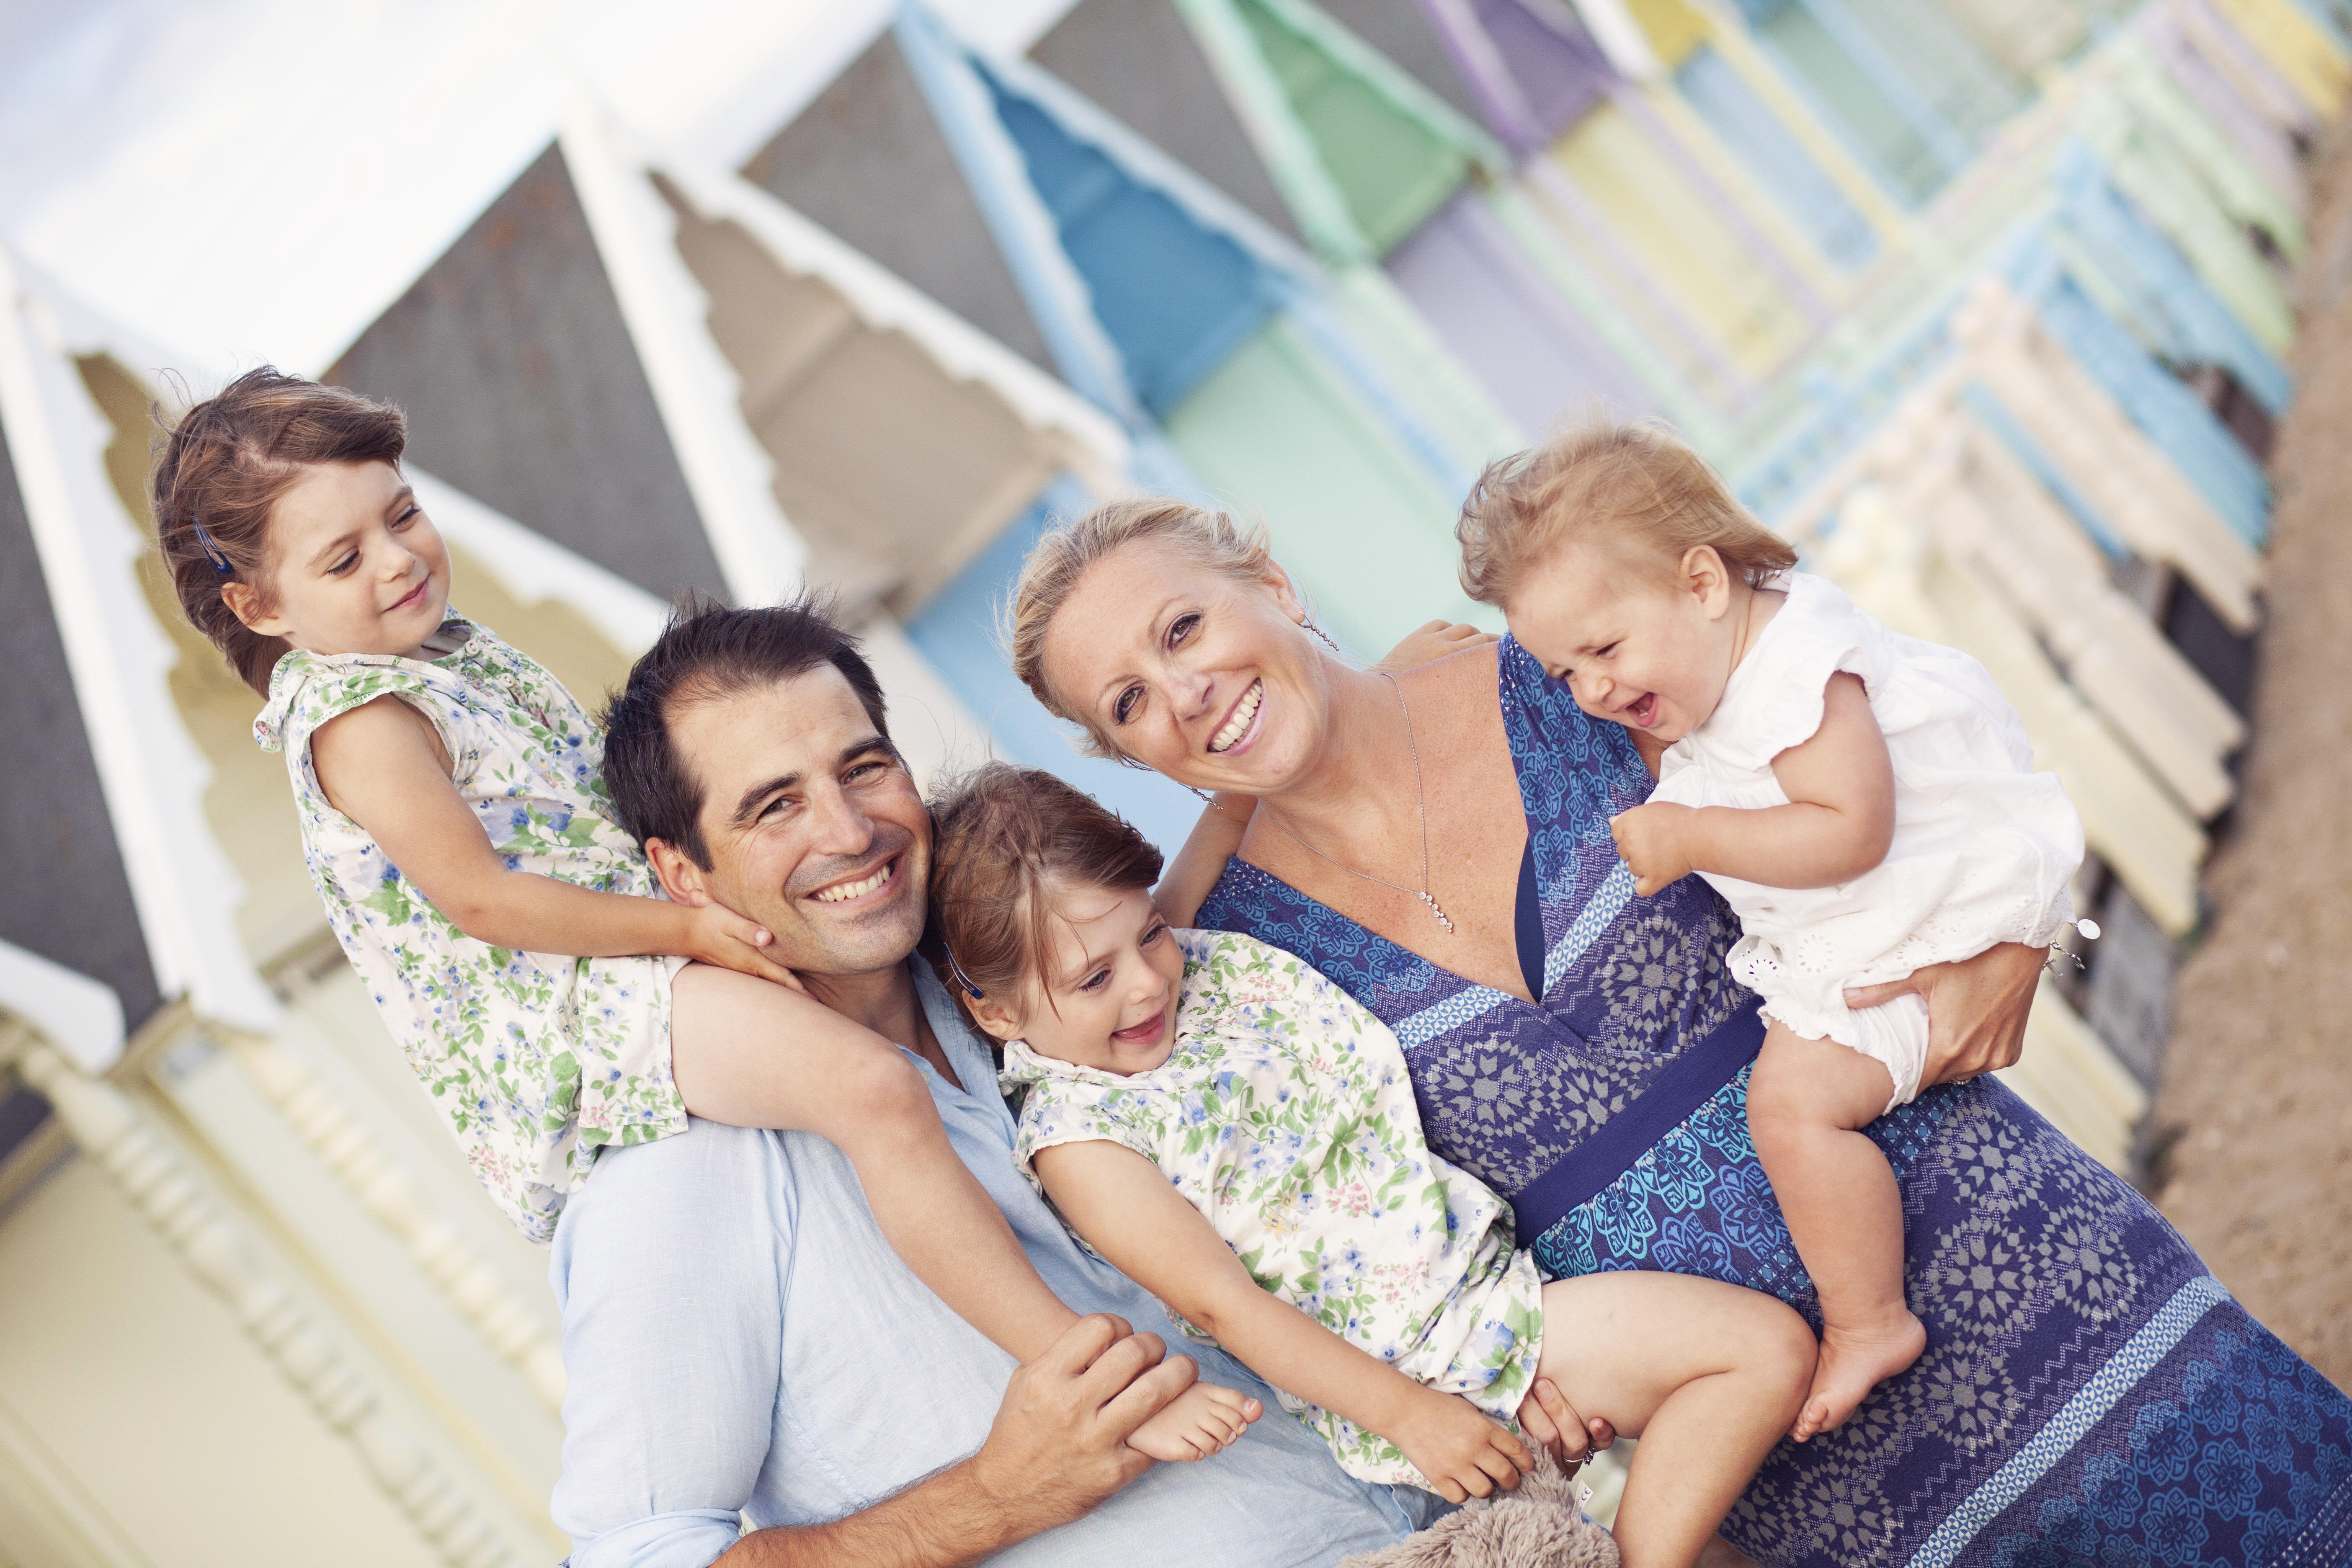 family photoshoot with beach huts as a backdrop